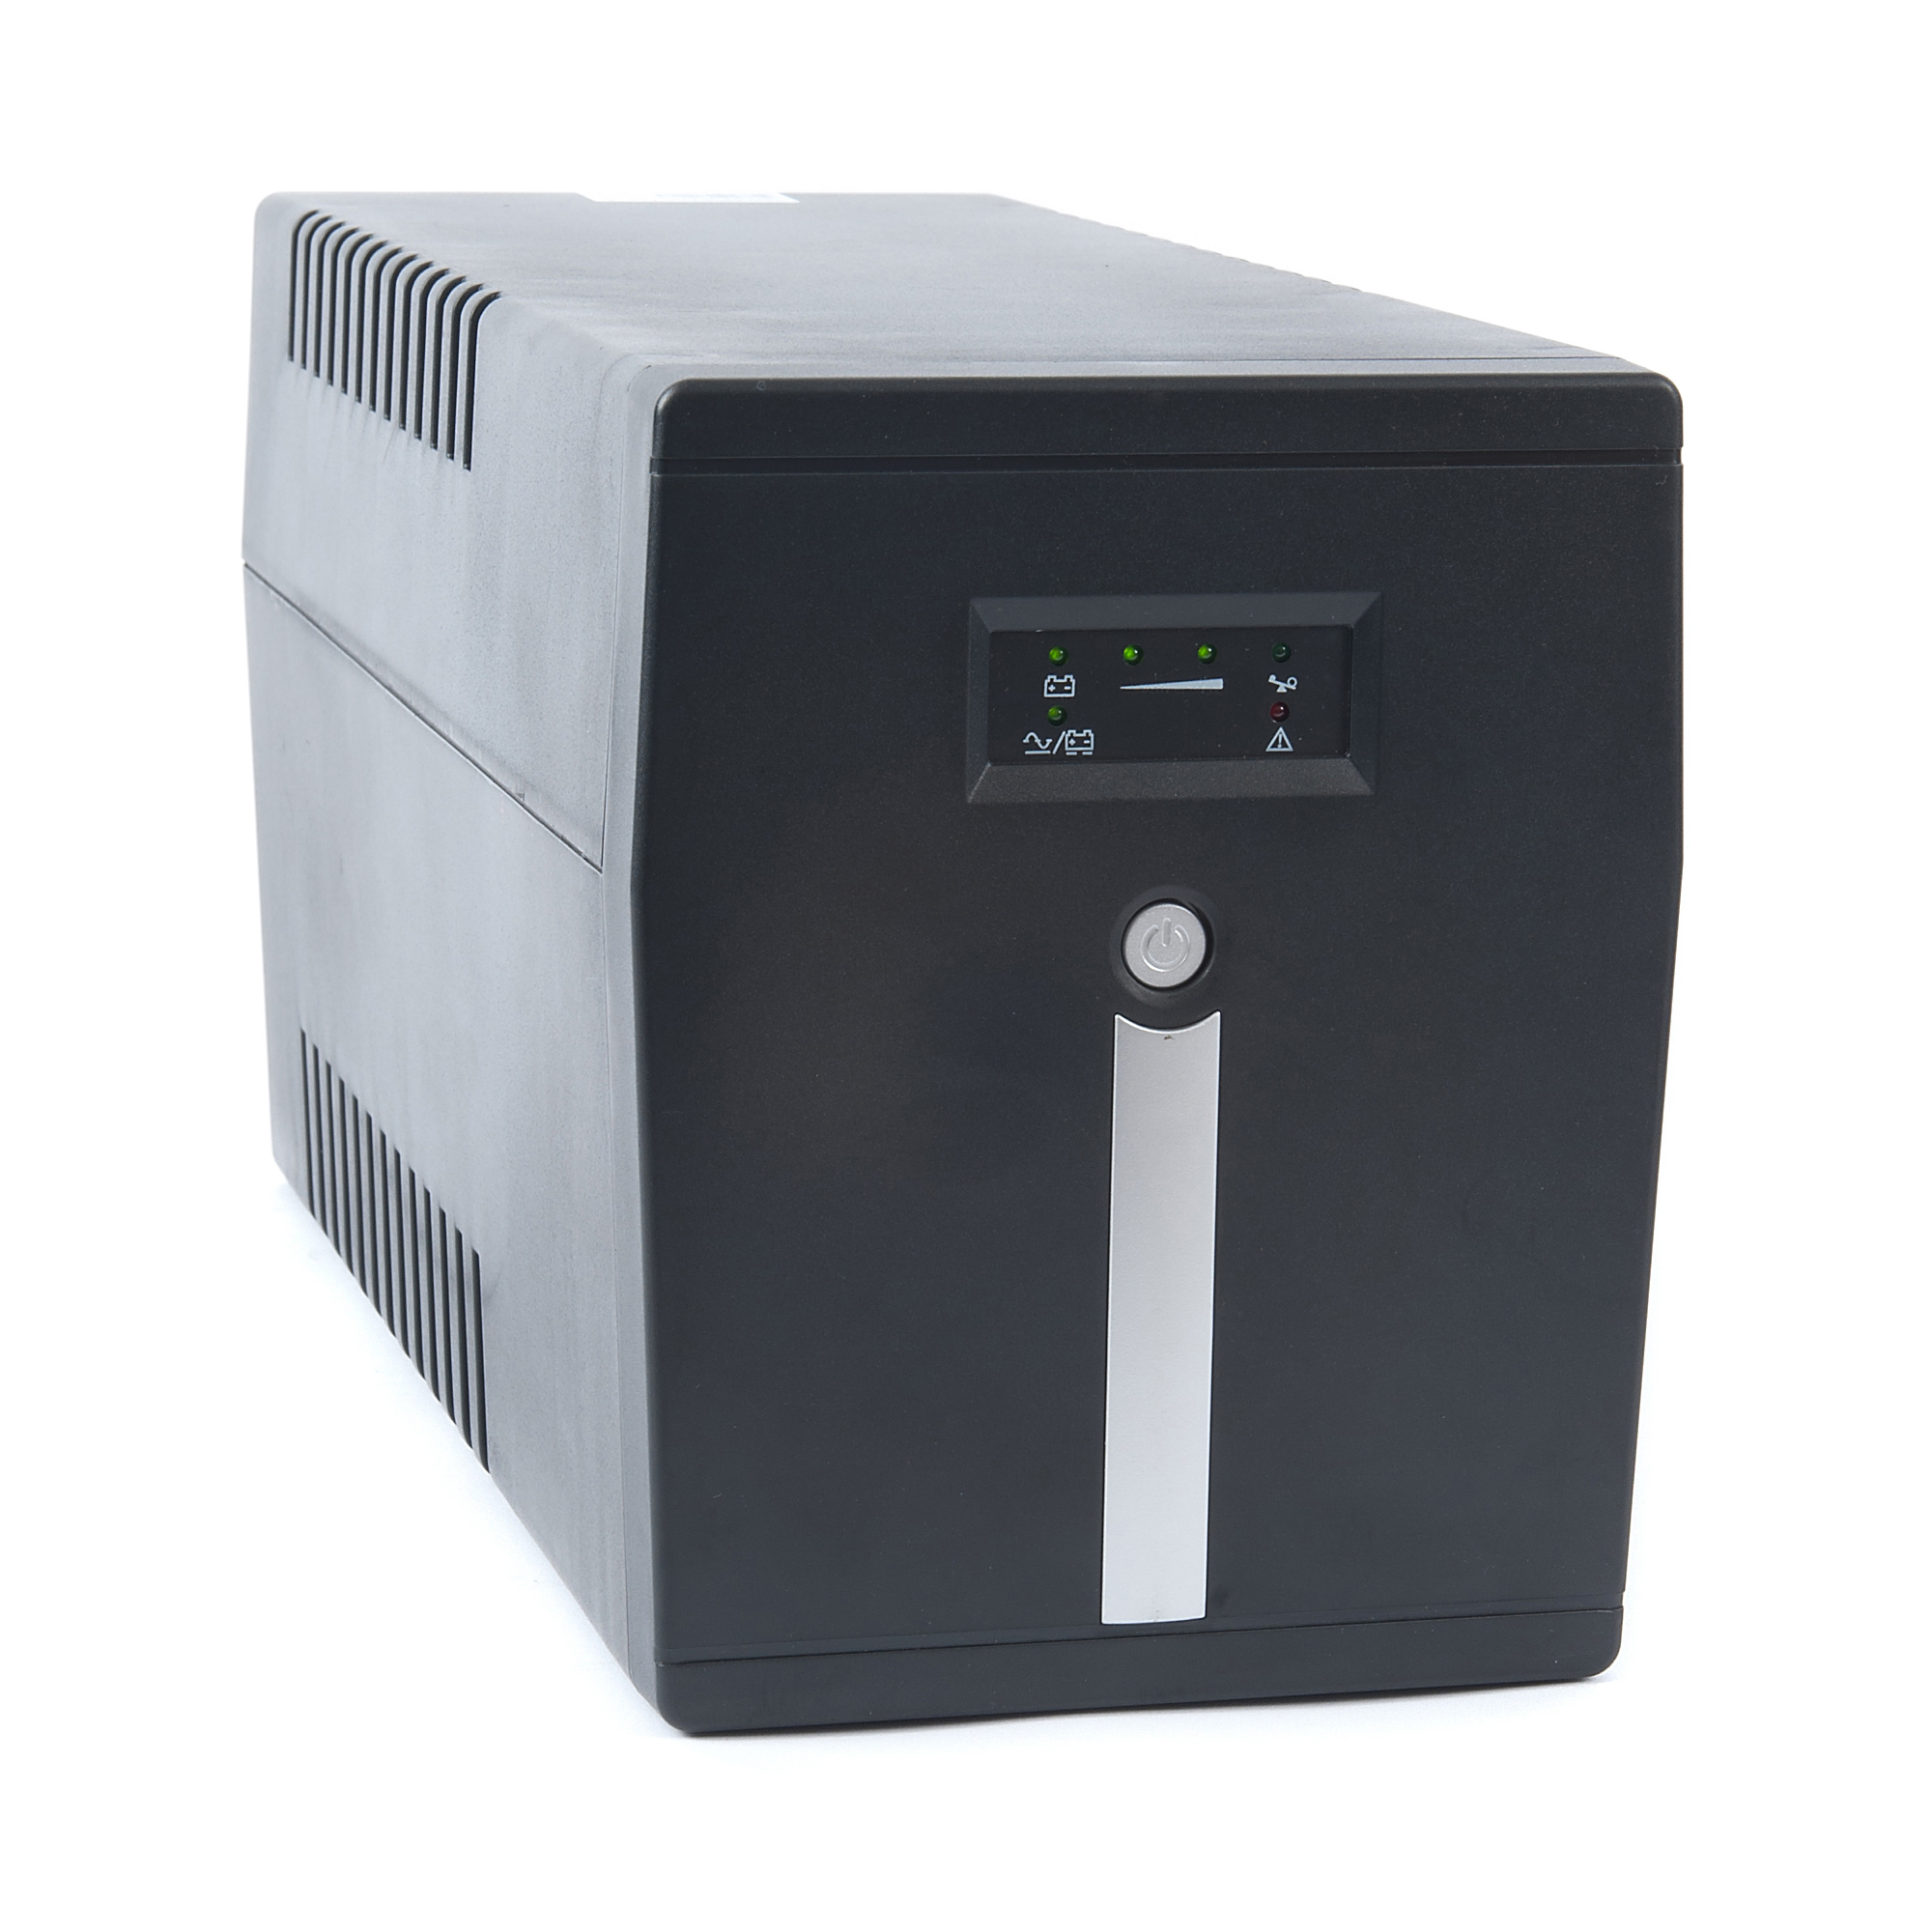 uninterruptible power supply Bulletin 1609 uninterruptible power supplies are designed specifically for industrial applications they meet worldwide industrial and general purpose application requirements up to 10 kva.